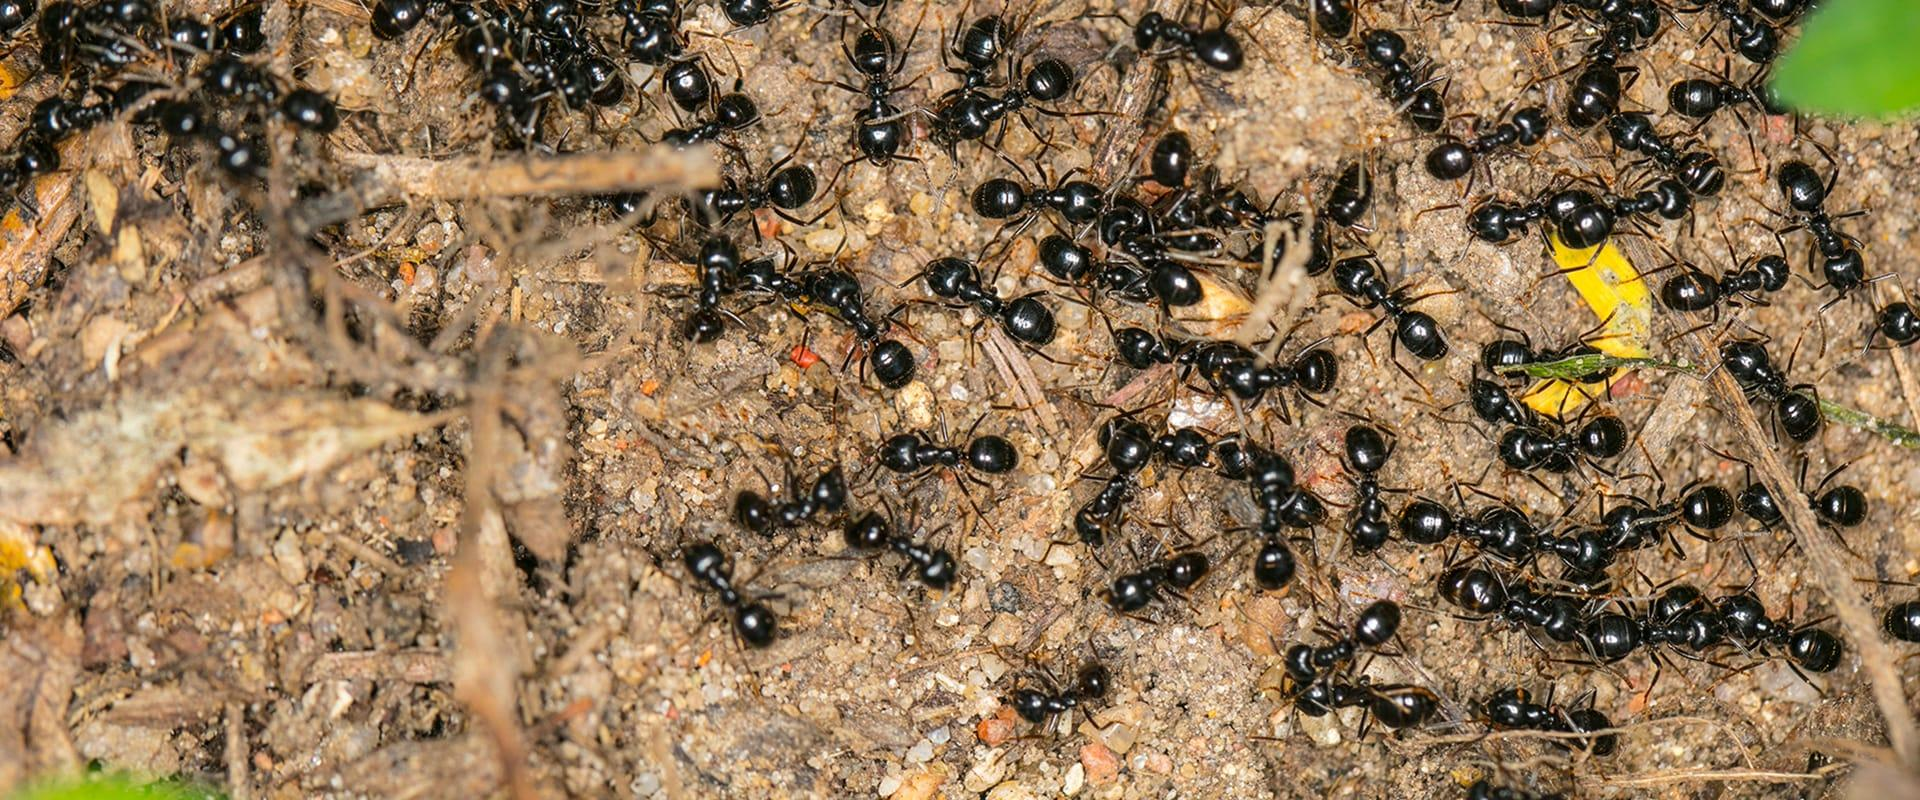 a swarm of black ants crawling around in the dirt outside of a home in lakewood new jersey